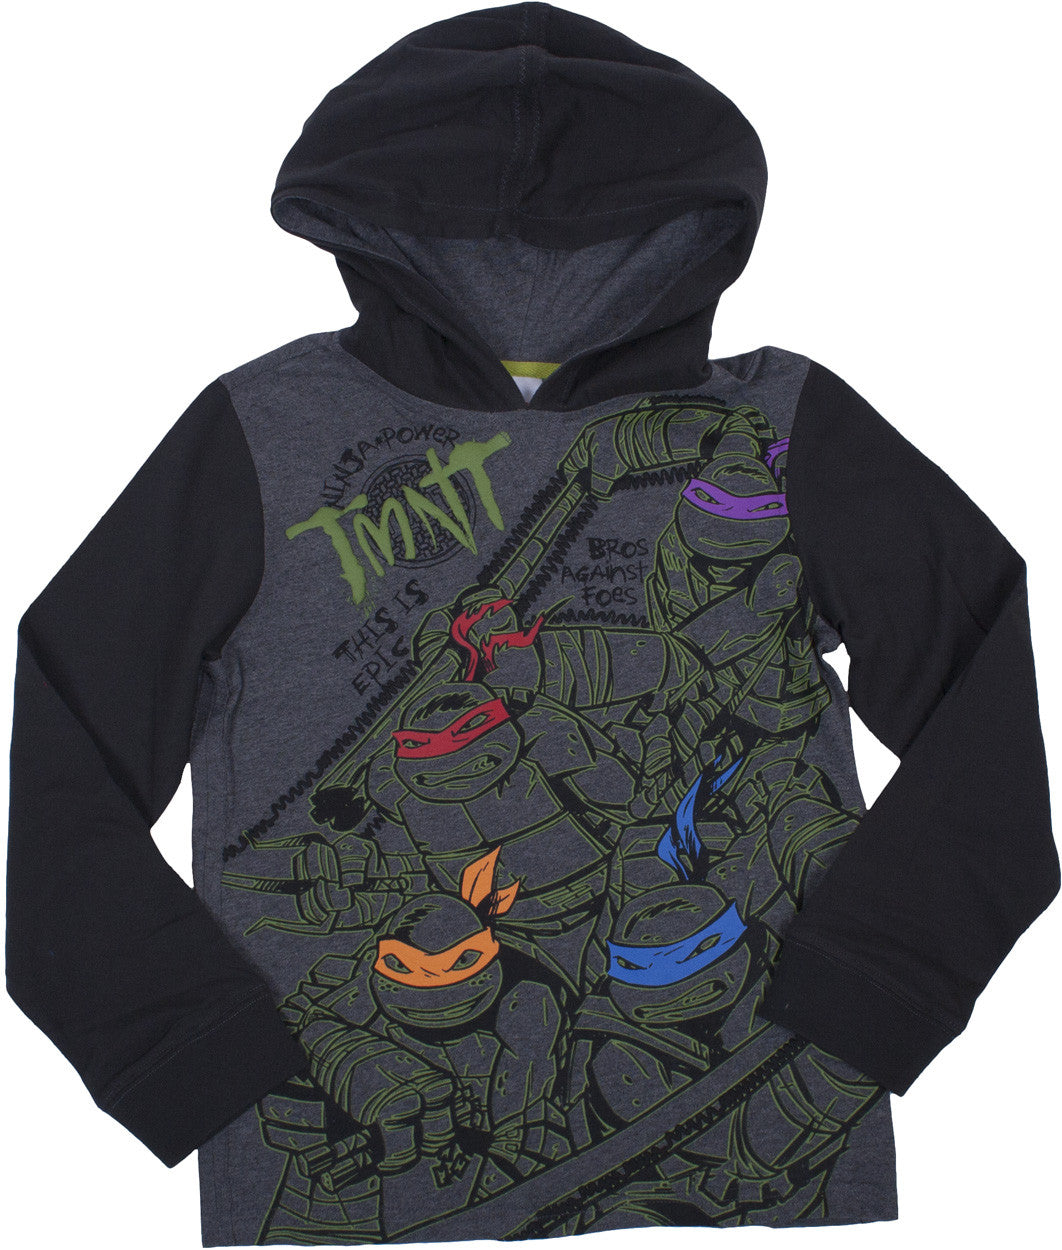 Teenage Mutant Ninja Turtles Longsleeve Hooded Tee - Youth